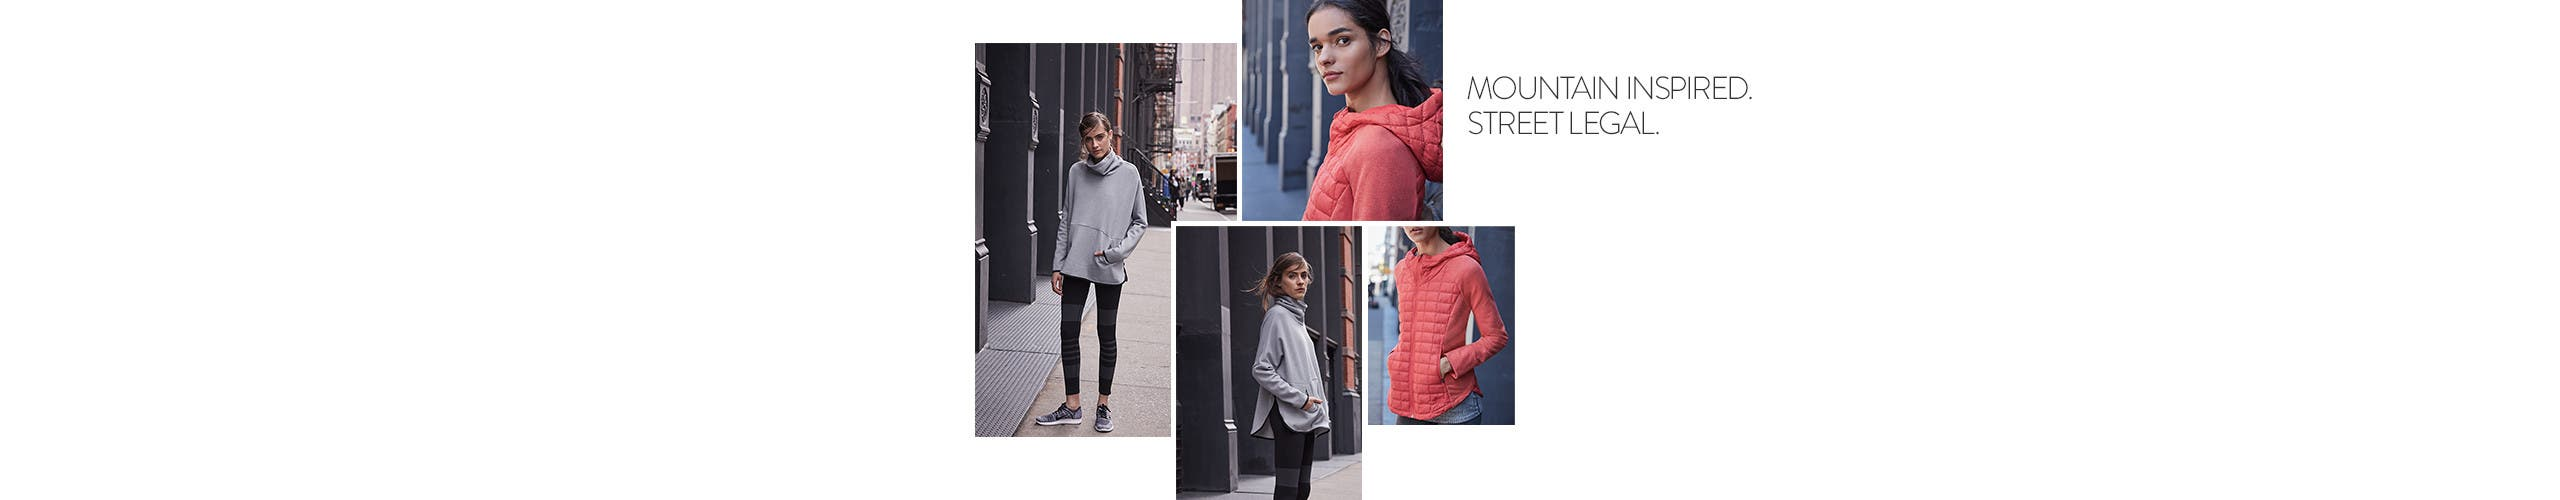 Mountain inspired, street legal: The North Face women's clothing